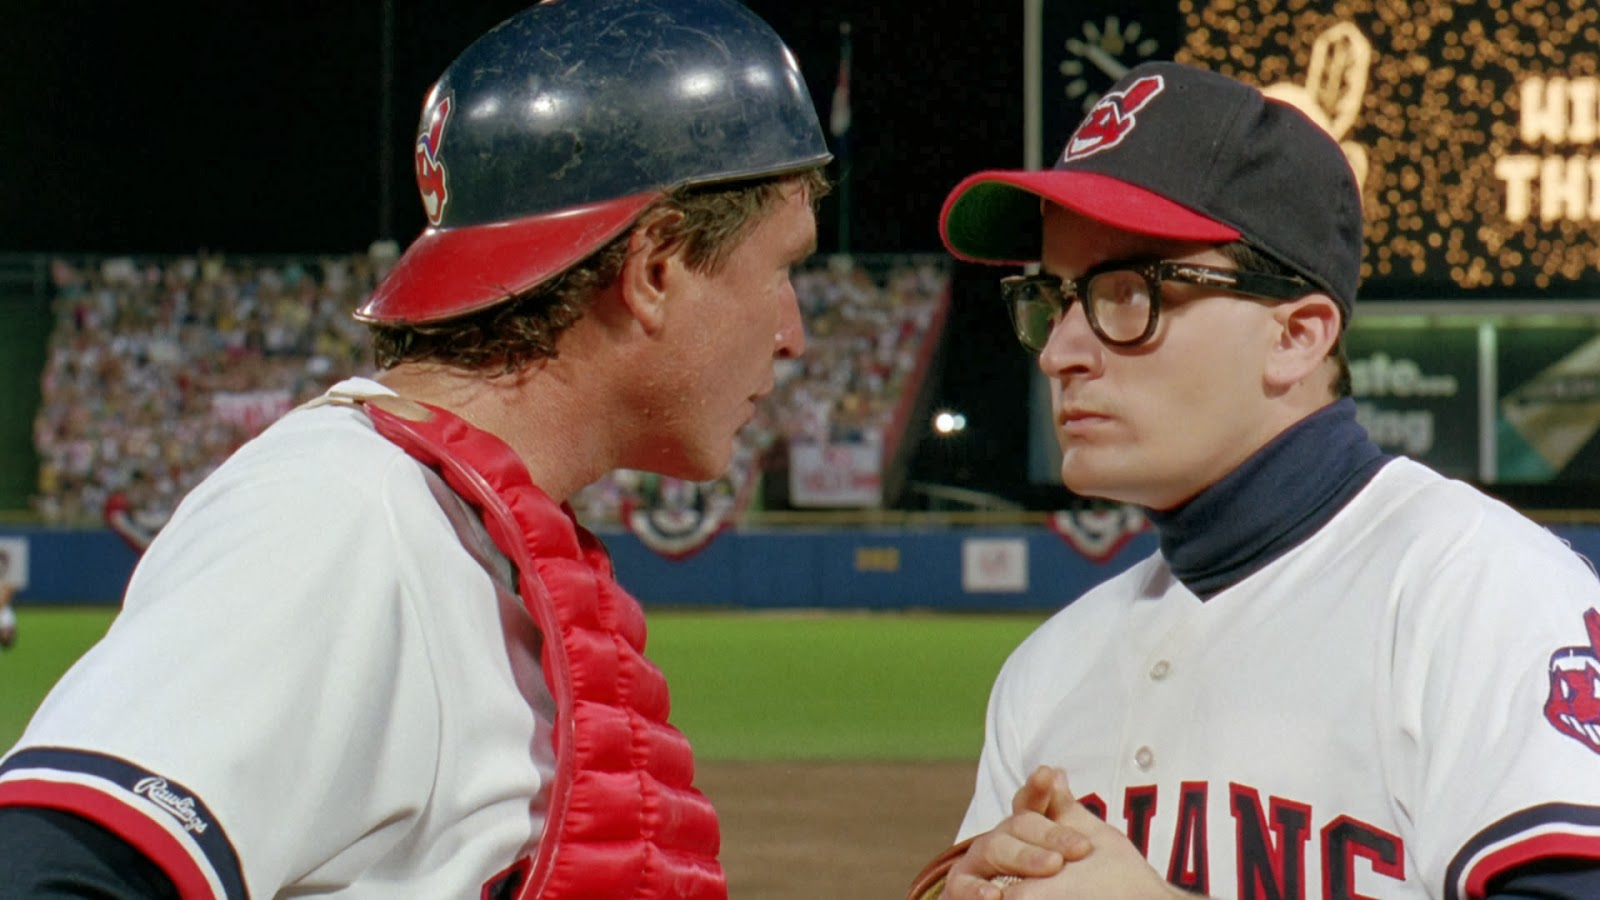 Jake Taylor and Rick Vaughn confer in 'Major League'